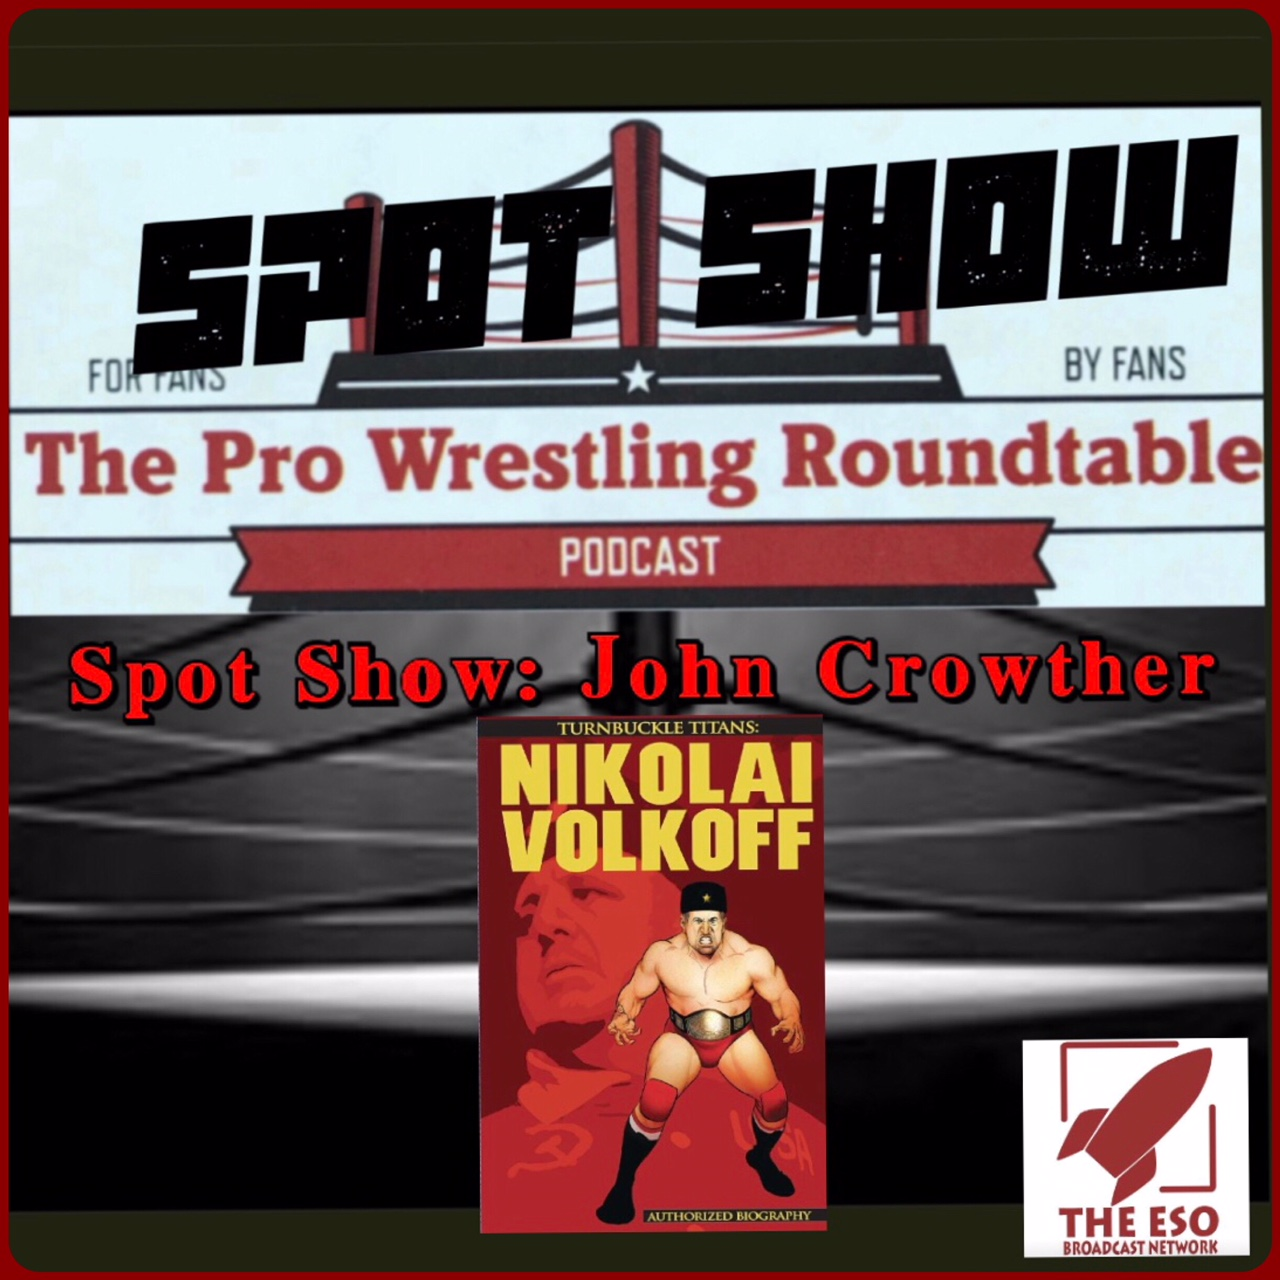 Spot Show: Wrestling Comic Book Writer John Crowther